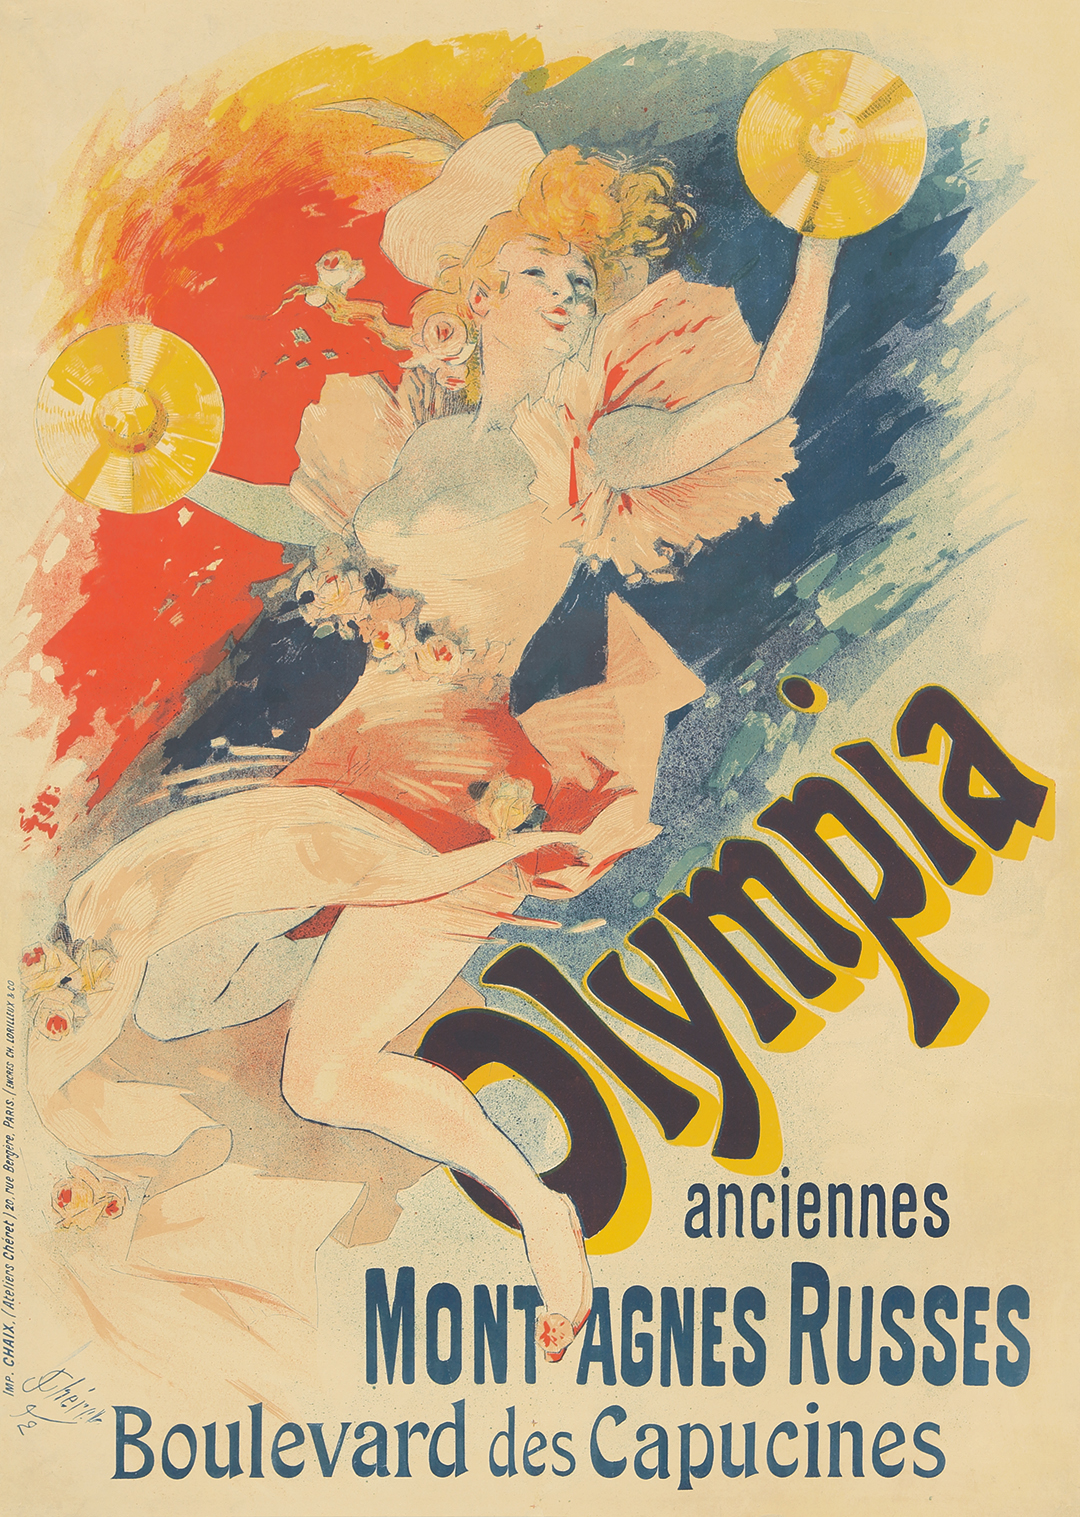 183. Olympia / Anciennes Montagnes Russes. 1892.